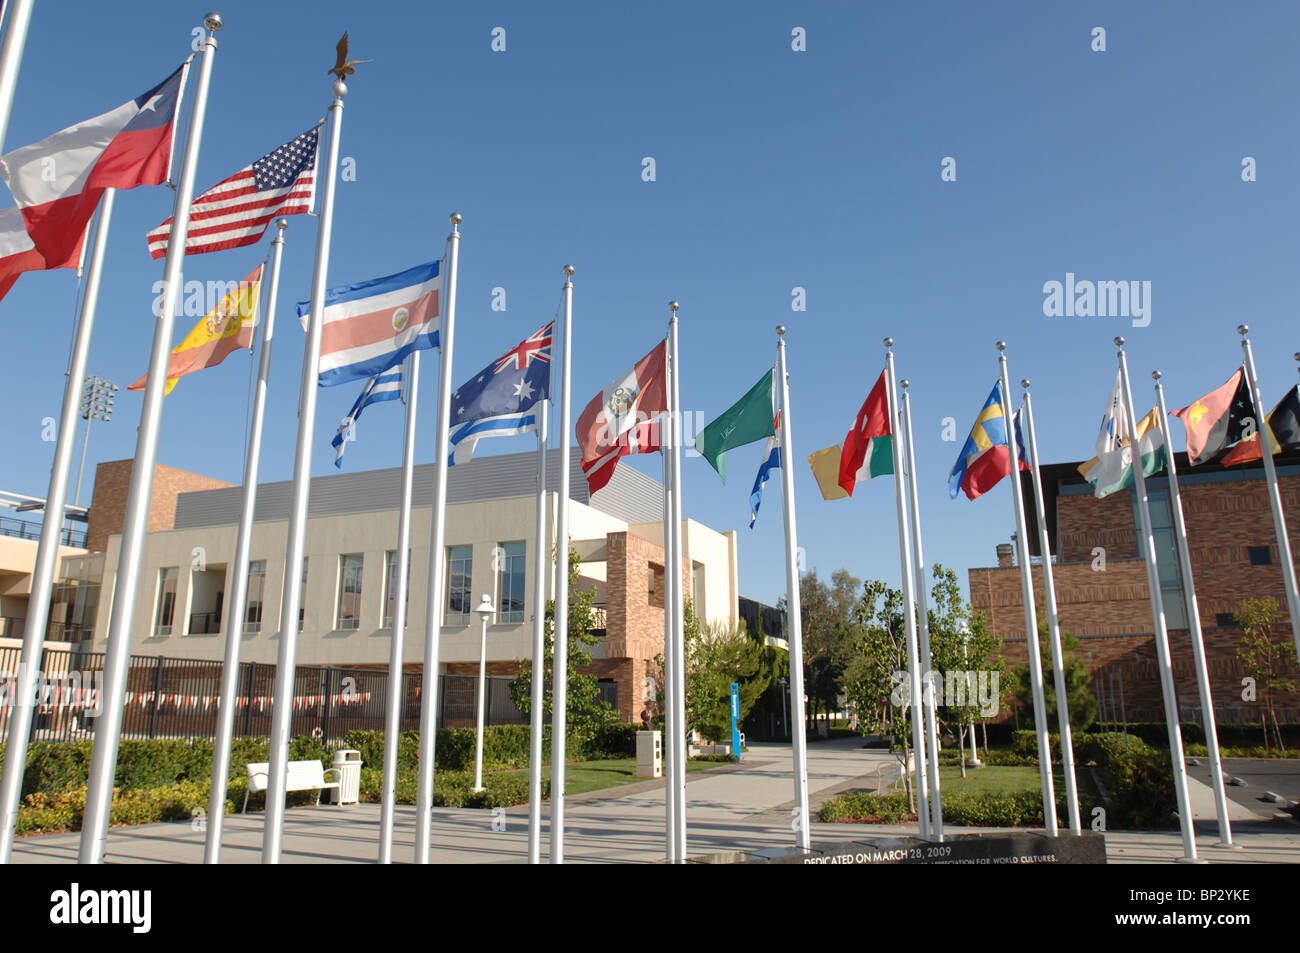 Chapman University's  Global Citizen's Plaza Fountain with flags of many nations. - Stock Image